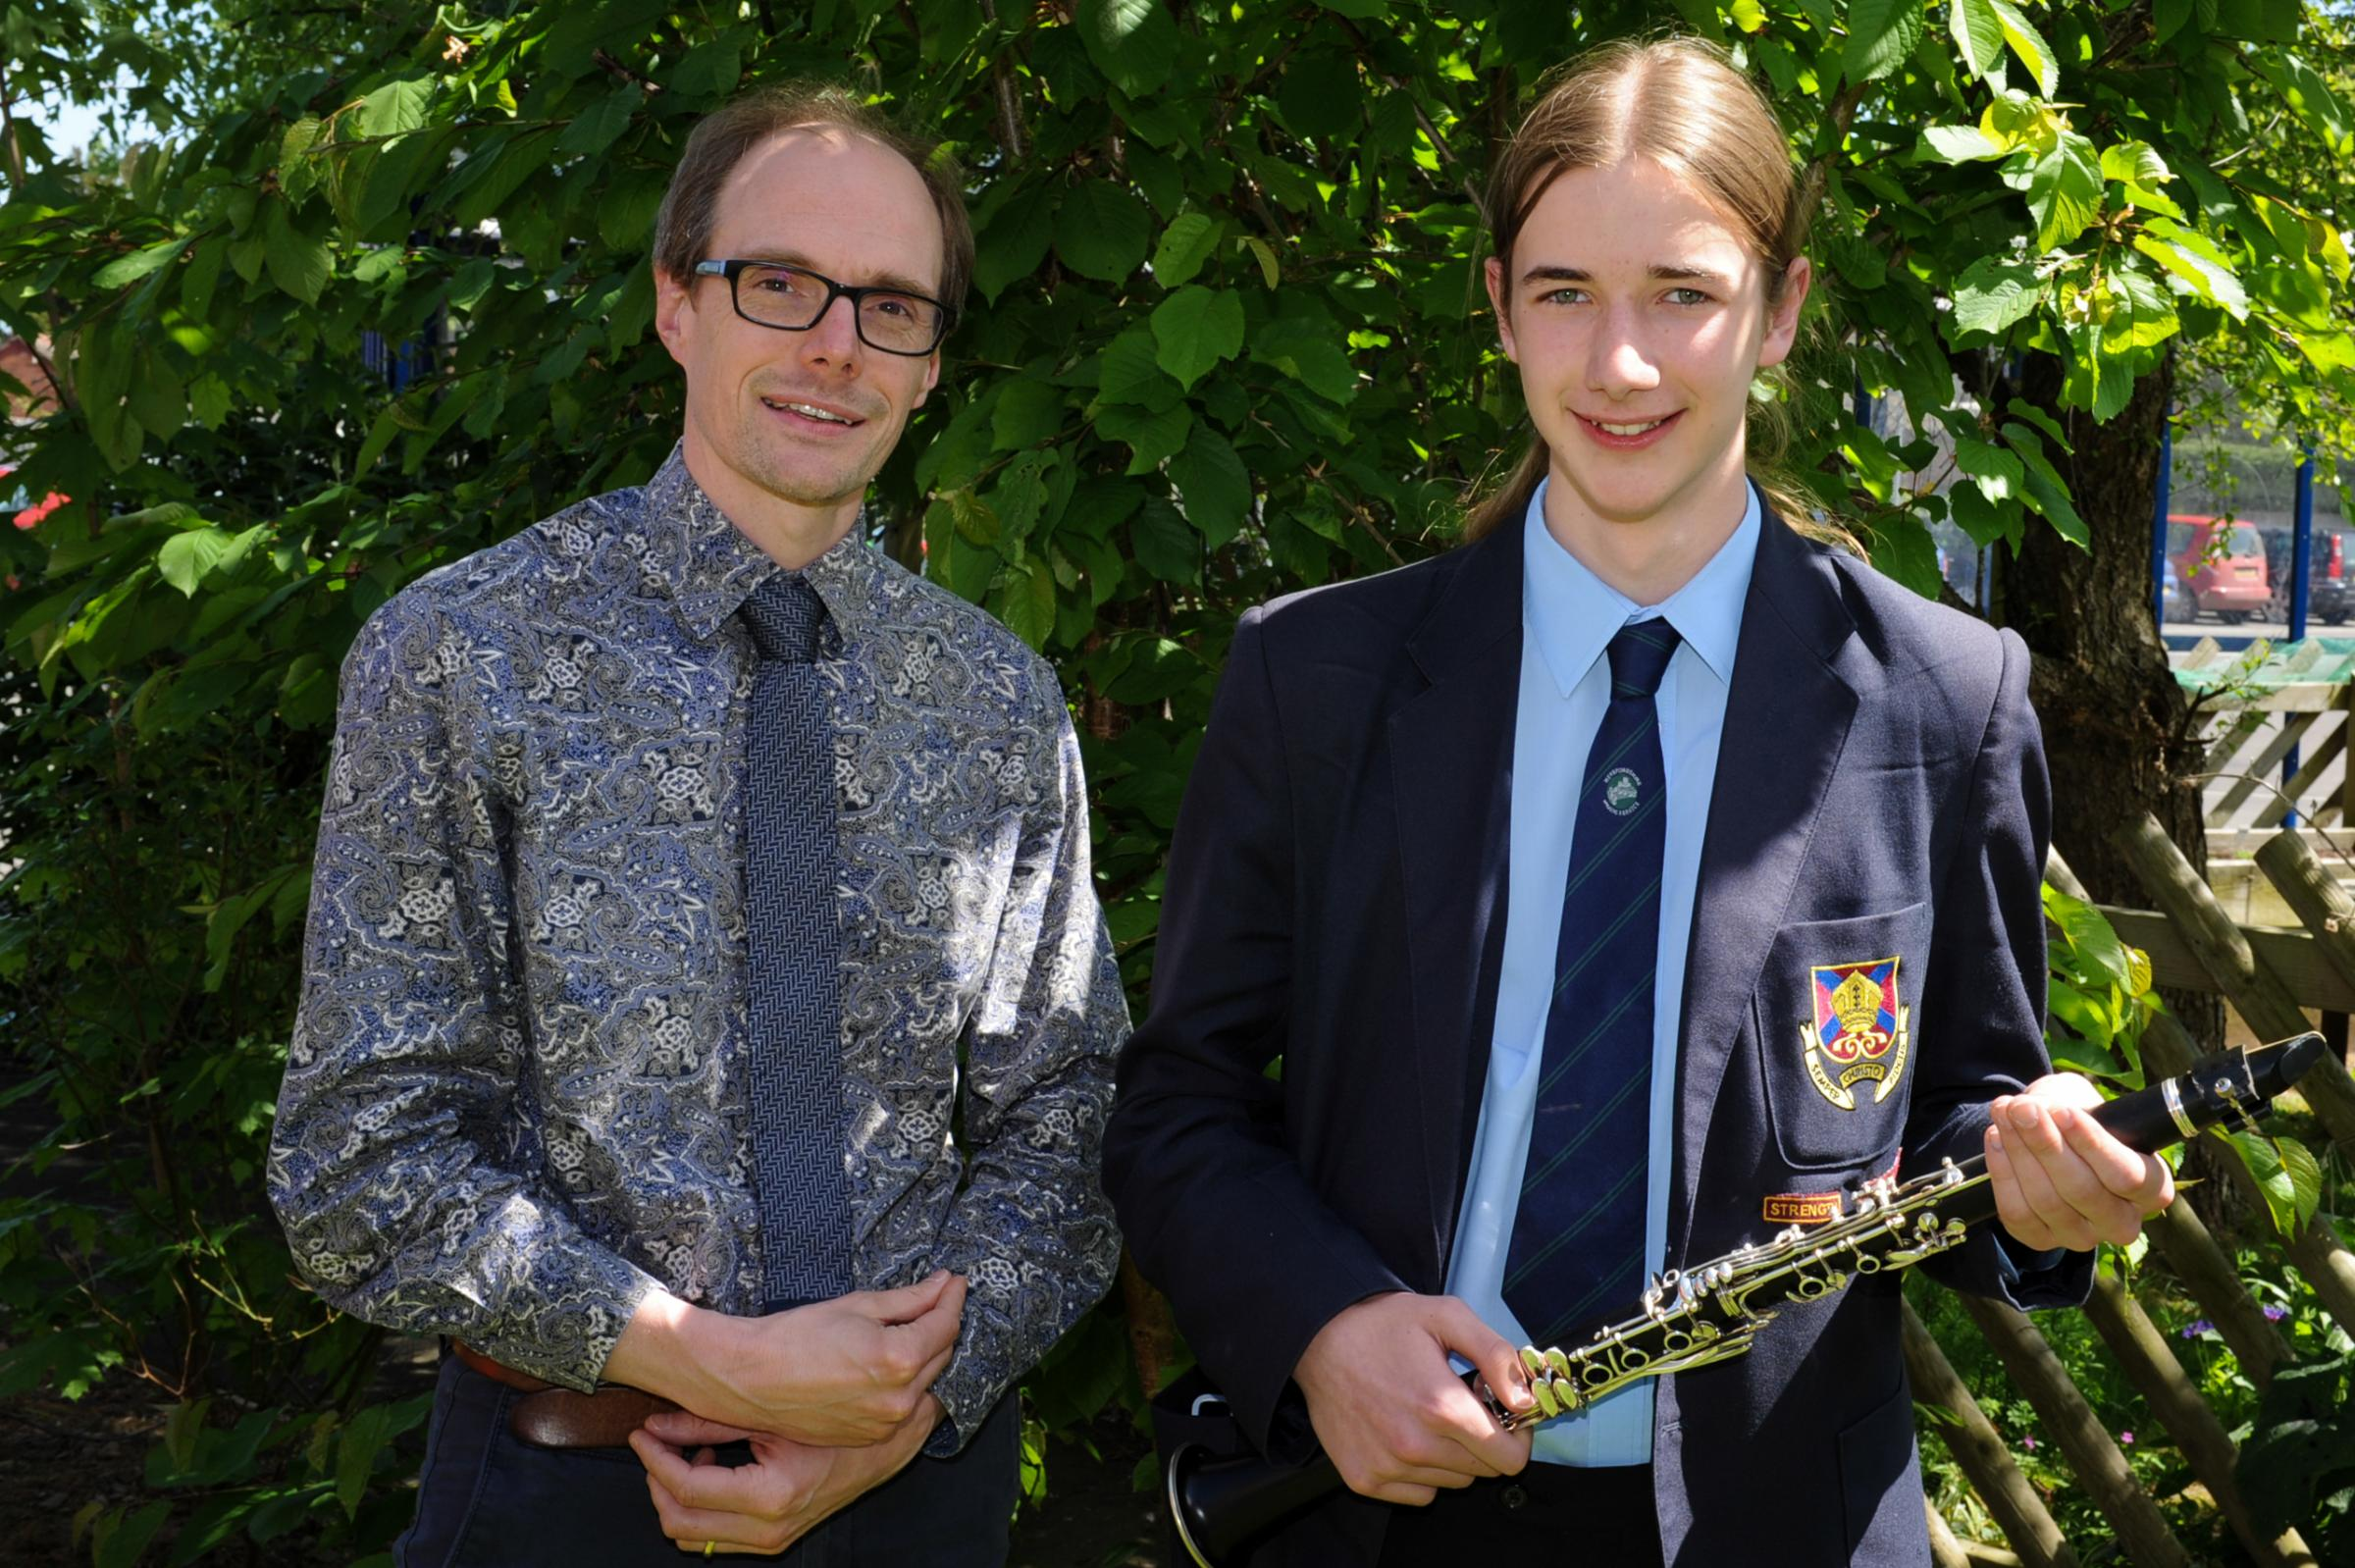 Bishop of Hereford's Bluecoat School pupil Eden Lloyd has been awarded a place with the National Youth Orchestra playing clarinet. Eden with Head of Music, Harry Sutton.